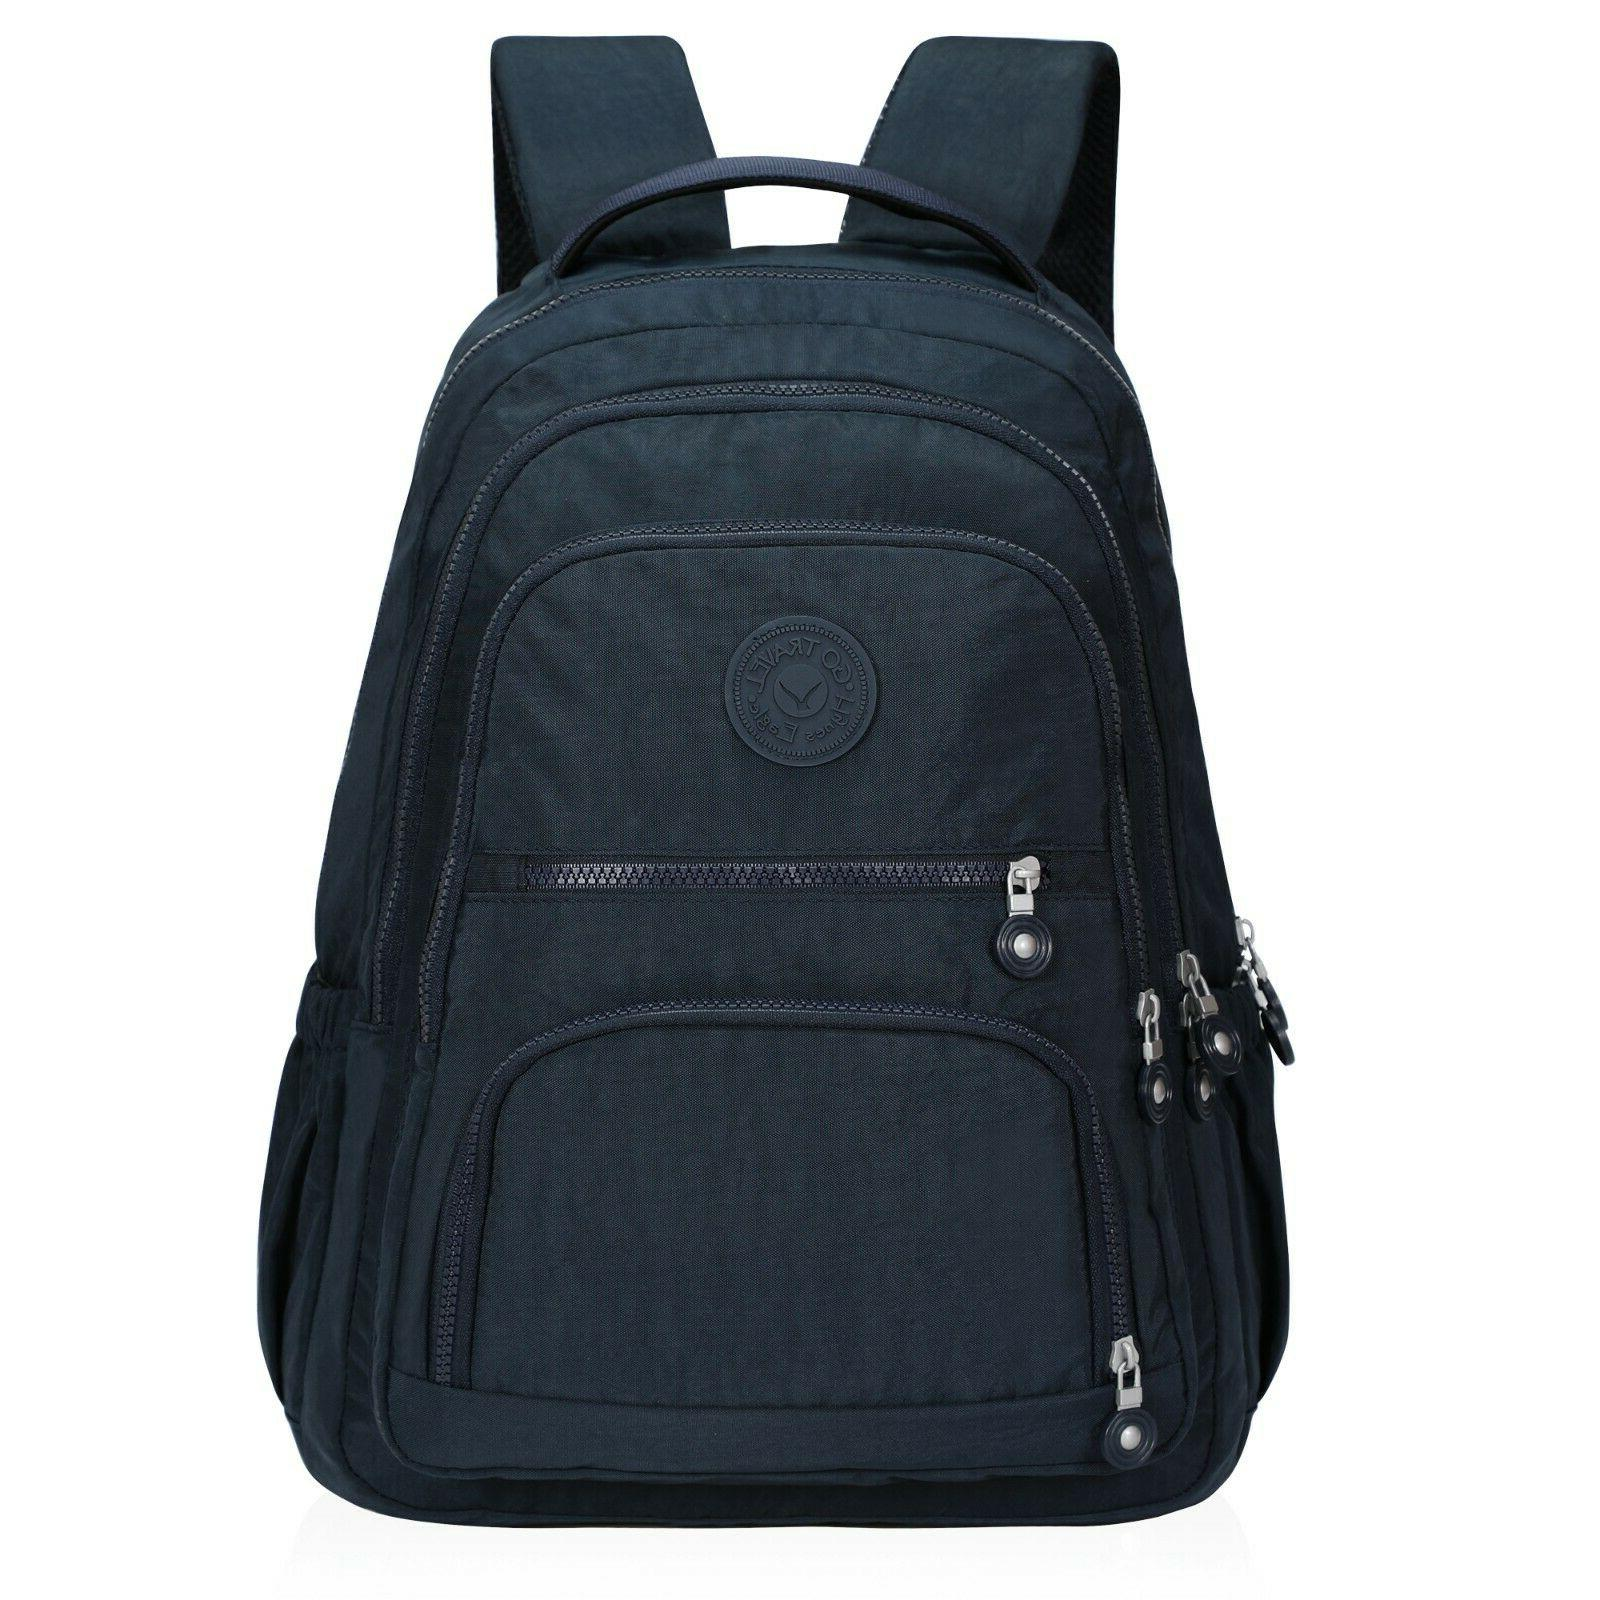 Hynes Eagle Backpack Student Laptop Fits 15.6